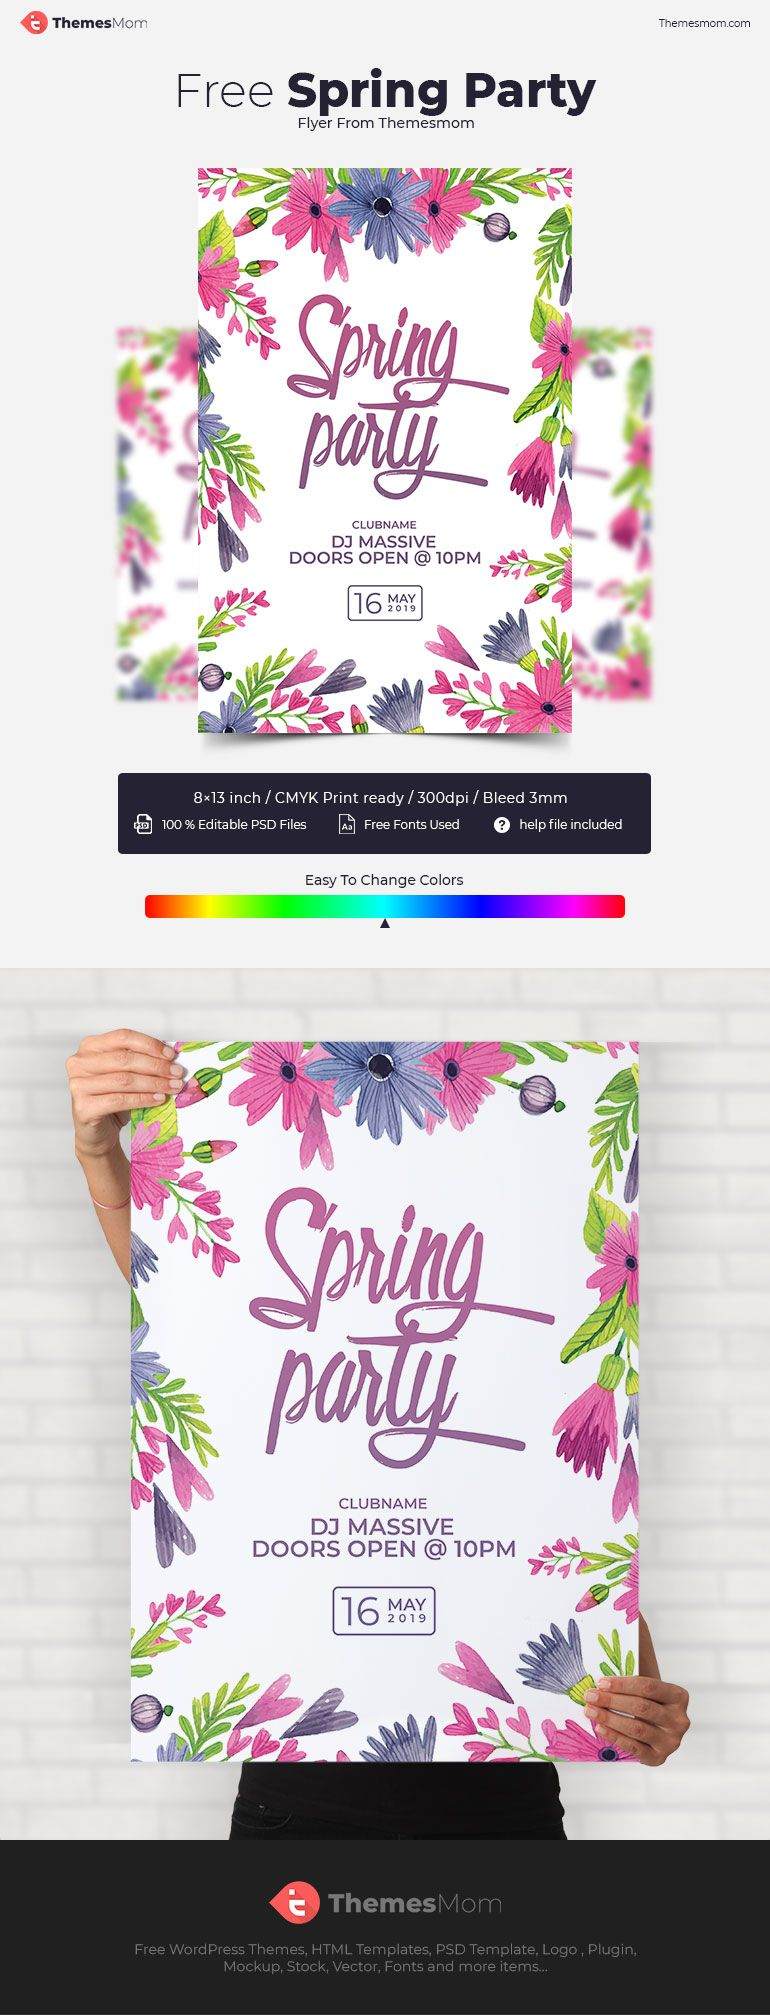 Free Spring Flyer PSD Templates Download ThemesMom